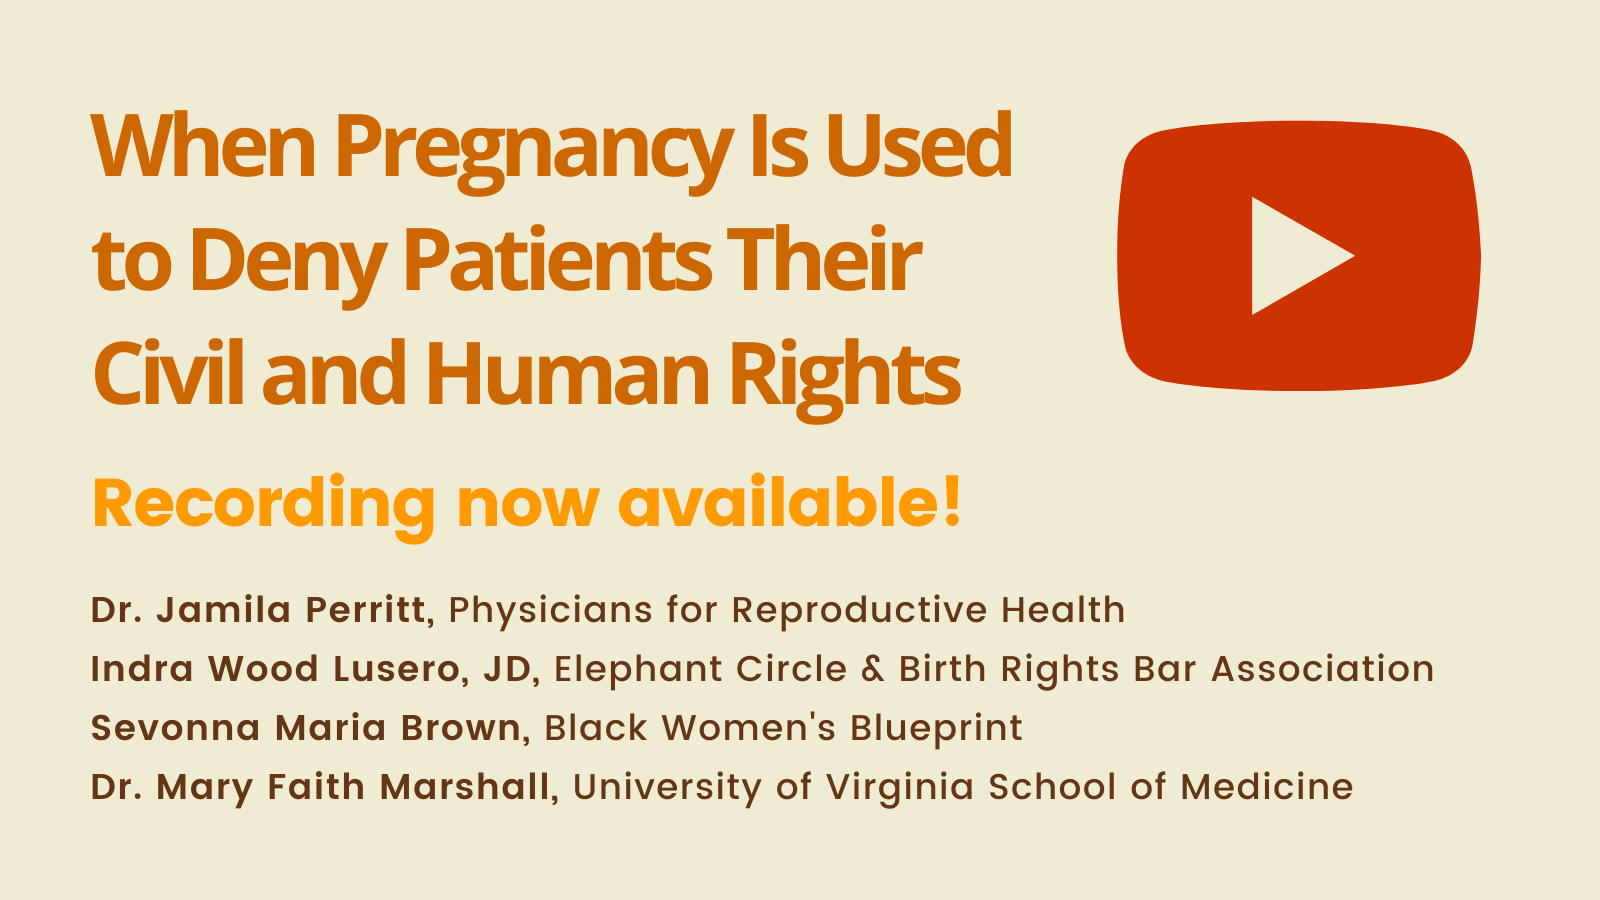 Webinar Recording Available! When Pregnancy is Used to Deny Pregnant Patients Their Civil and Human Rights